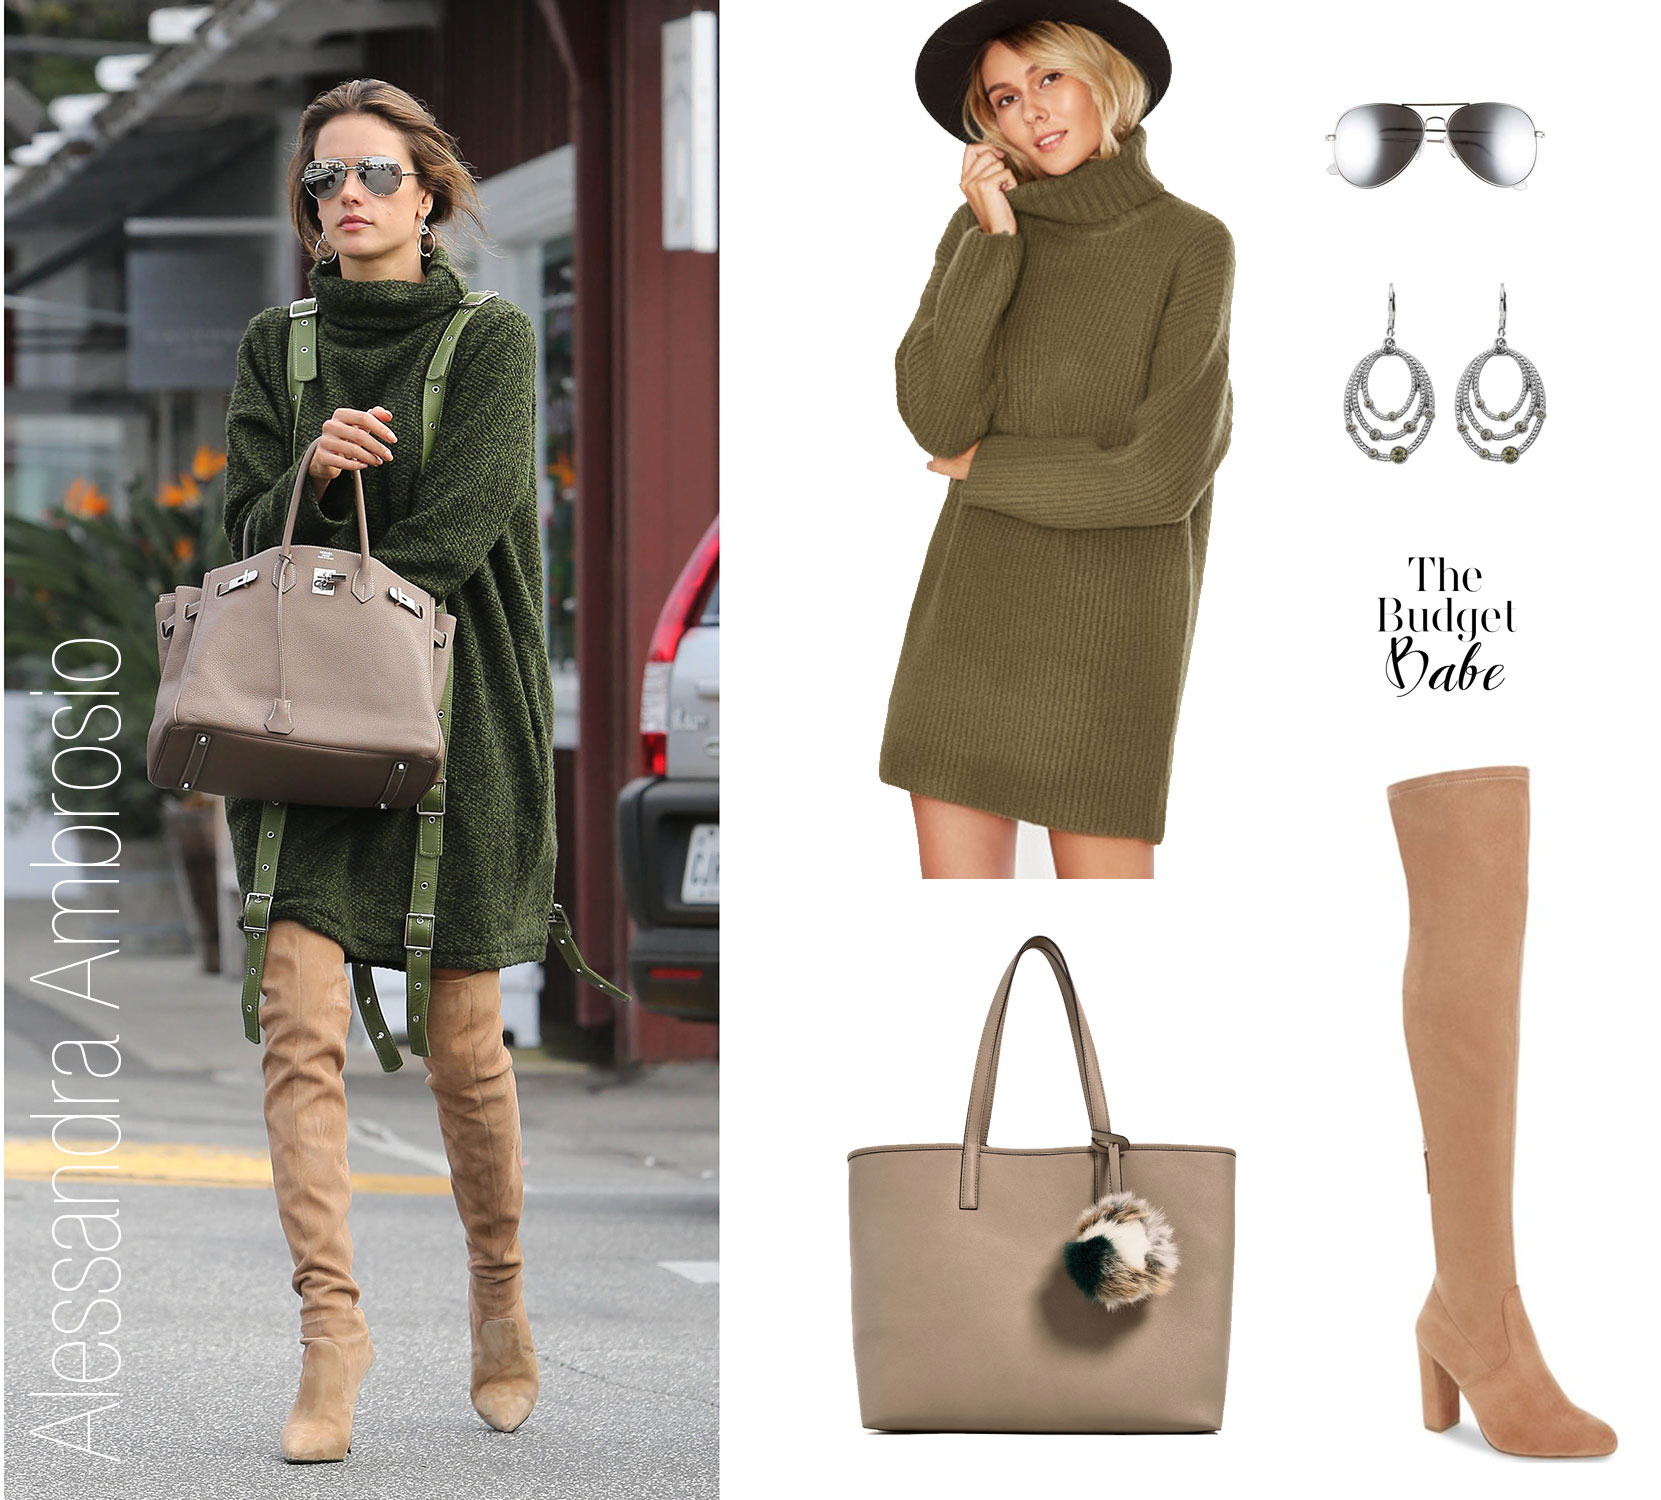 6313875256 Shop Alessandra Ambrosio's turtleneck sweaterdress and over-the-knee boots  look for less.